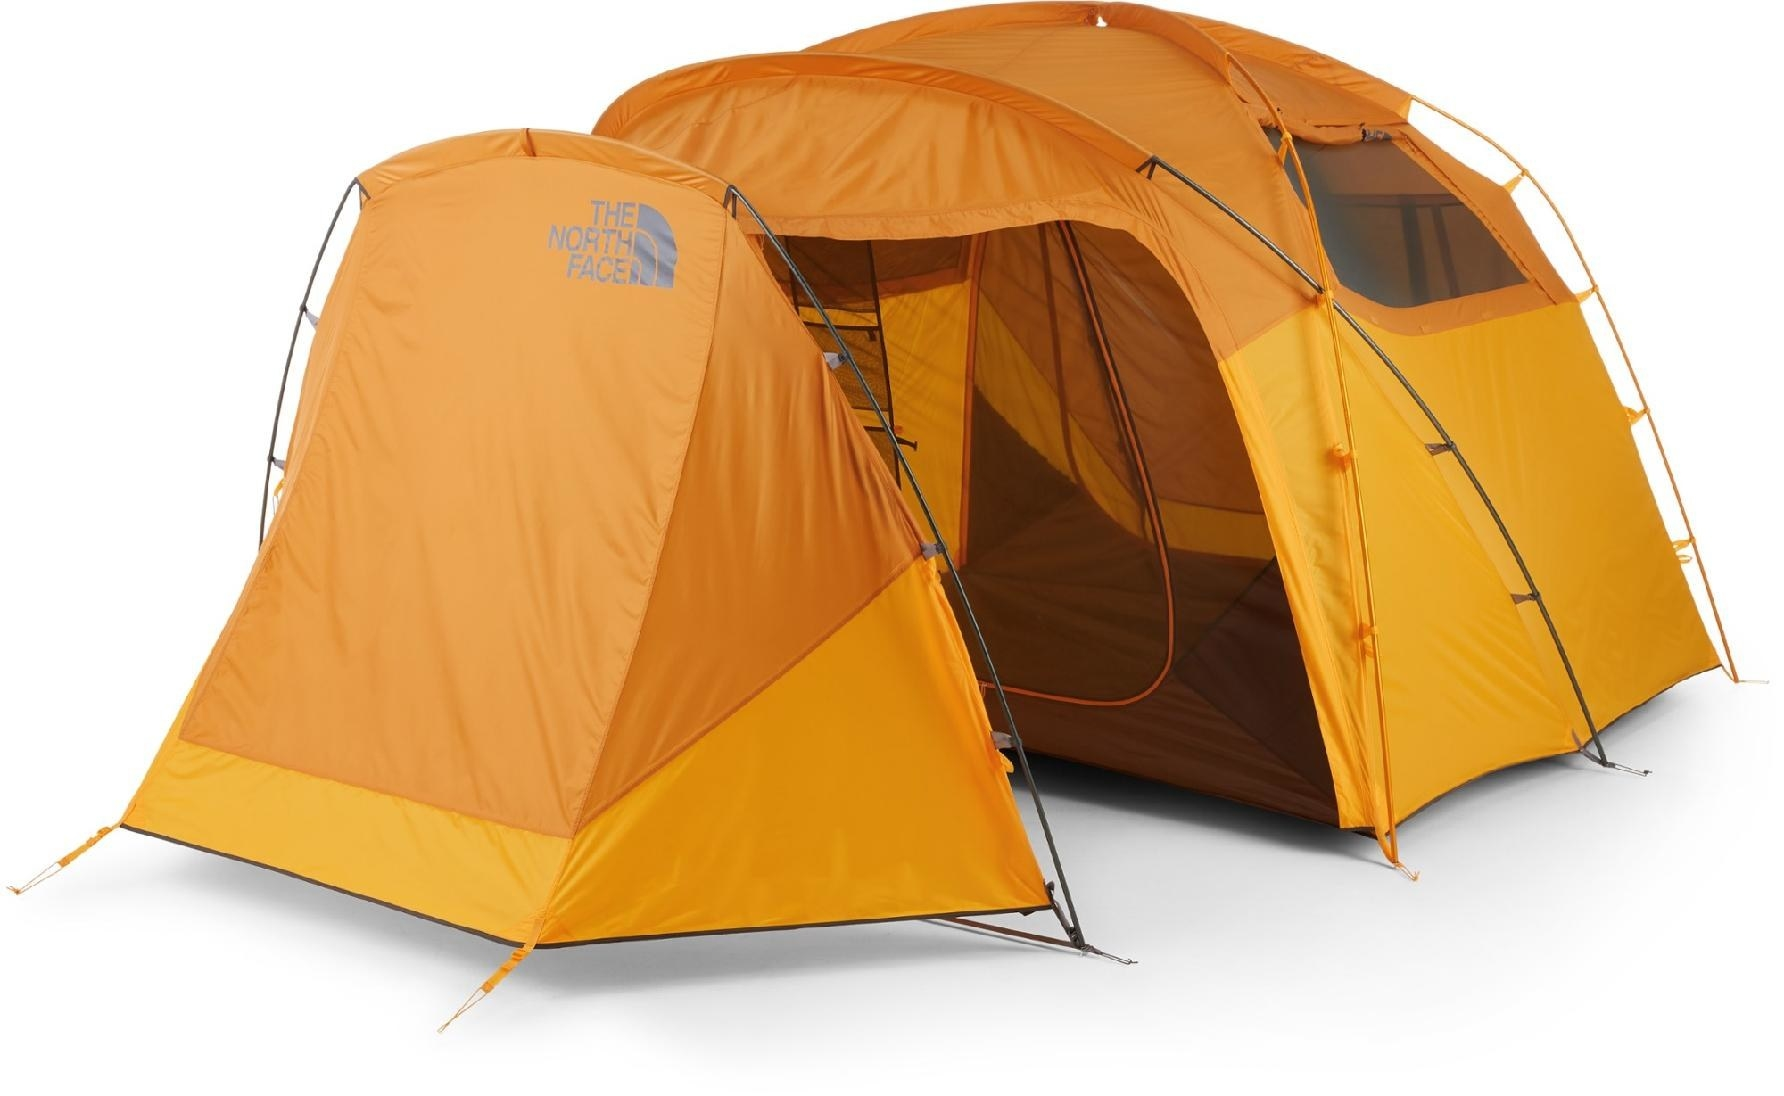 The North Face Wawona 6 Tent set up